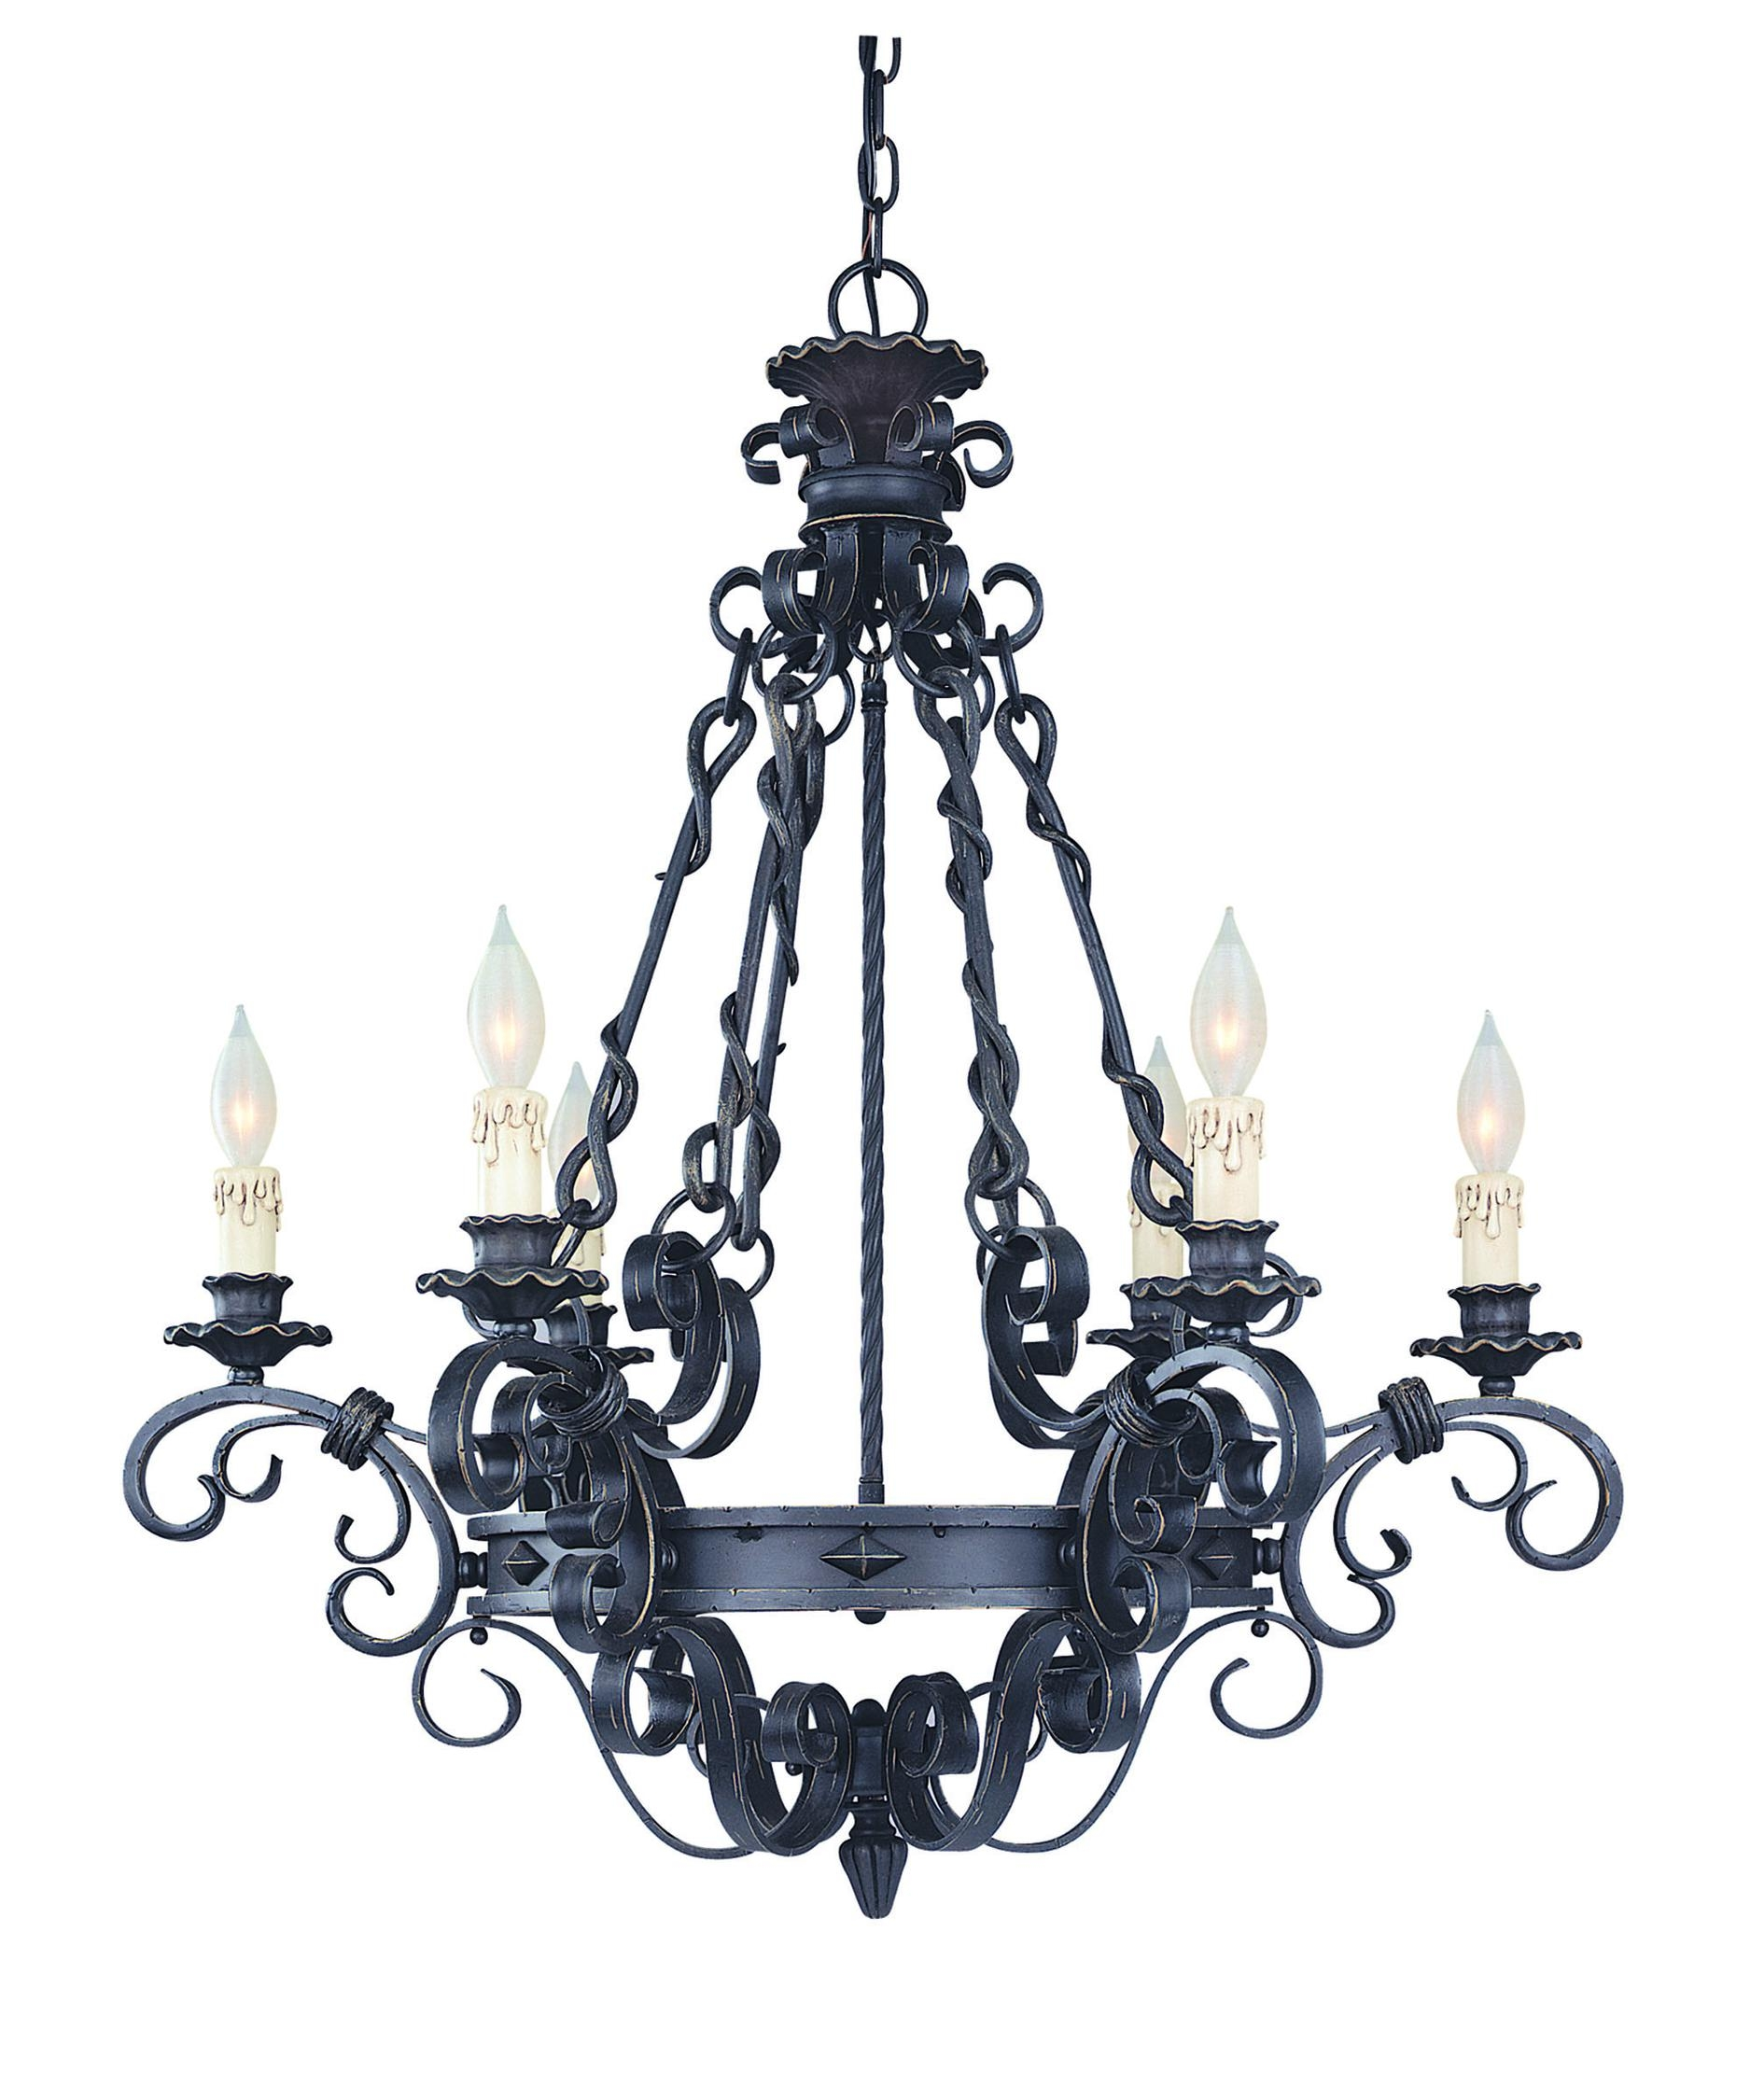 Savoy House 1 4314 6 17 Bourges 30 Inch Wide 6 Light Chandelier With Savoy House Chandeliers (Image 16 of 25)